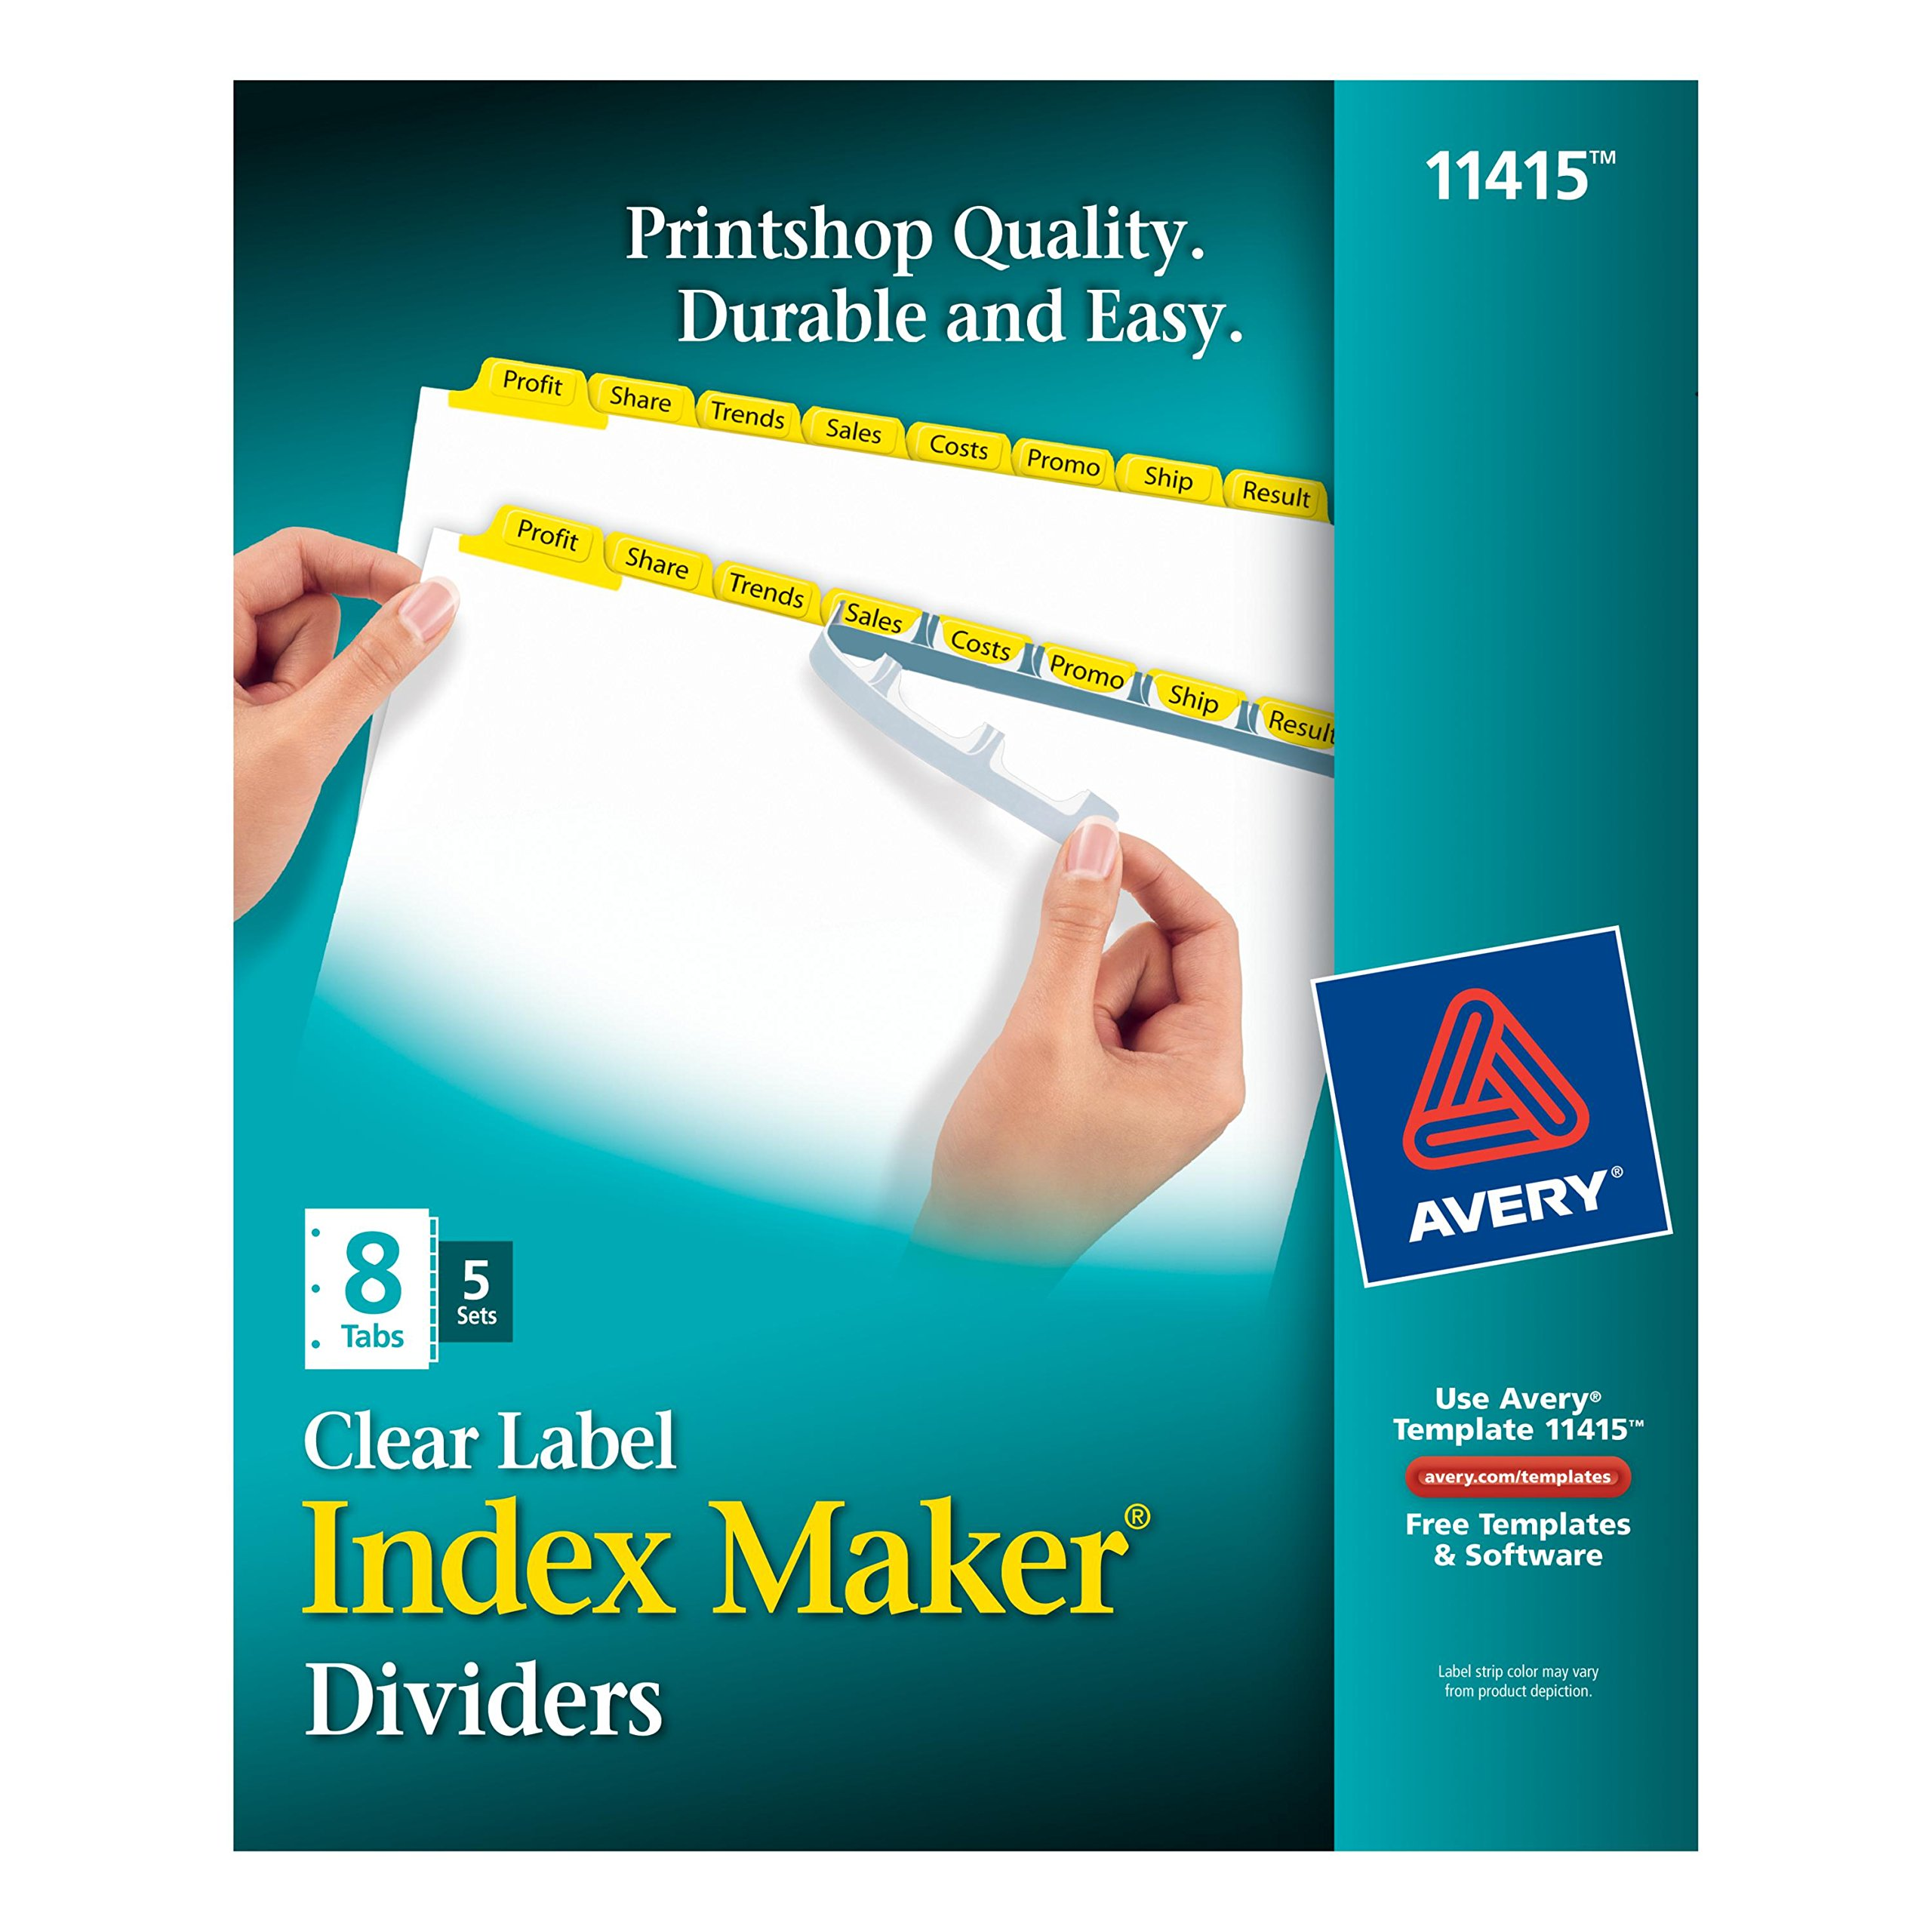 Avery Index Maker White Dividers with Yellow Tabs, 8-Tab, 5 Sets (11415)